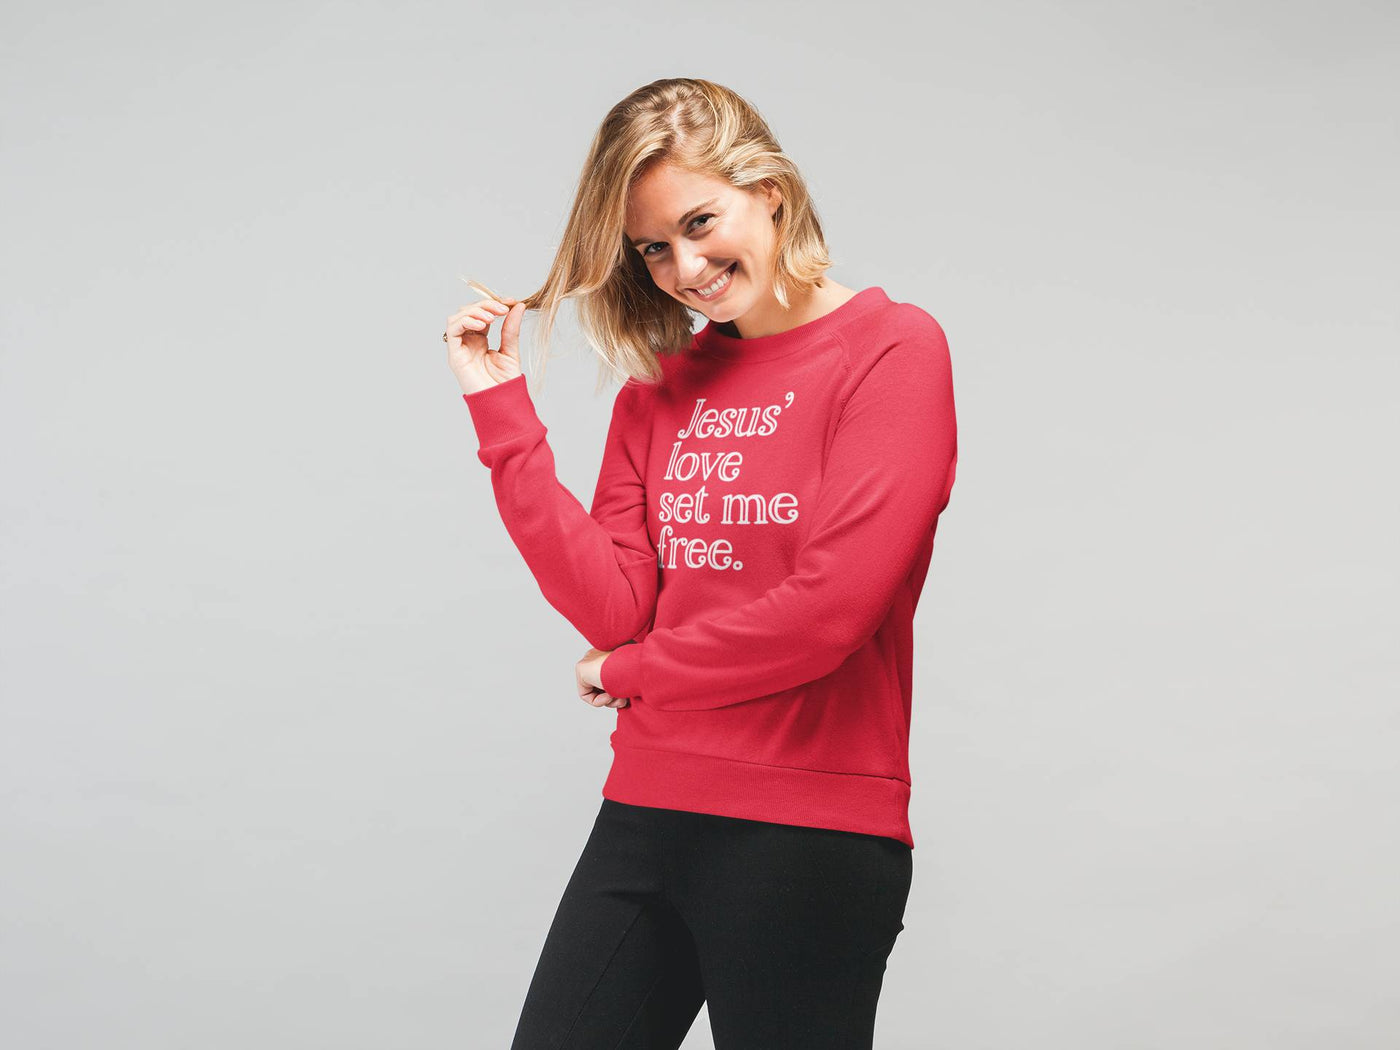 happy woman wearing christian sweatshirt pulling hair